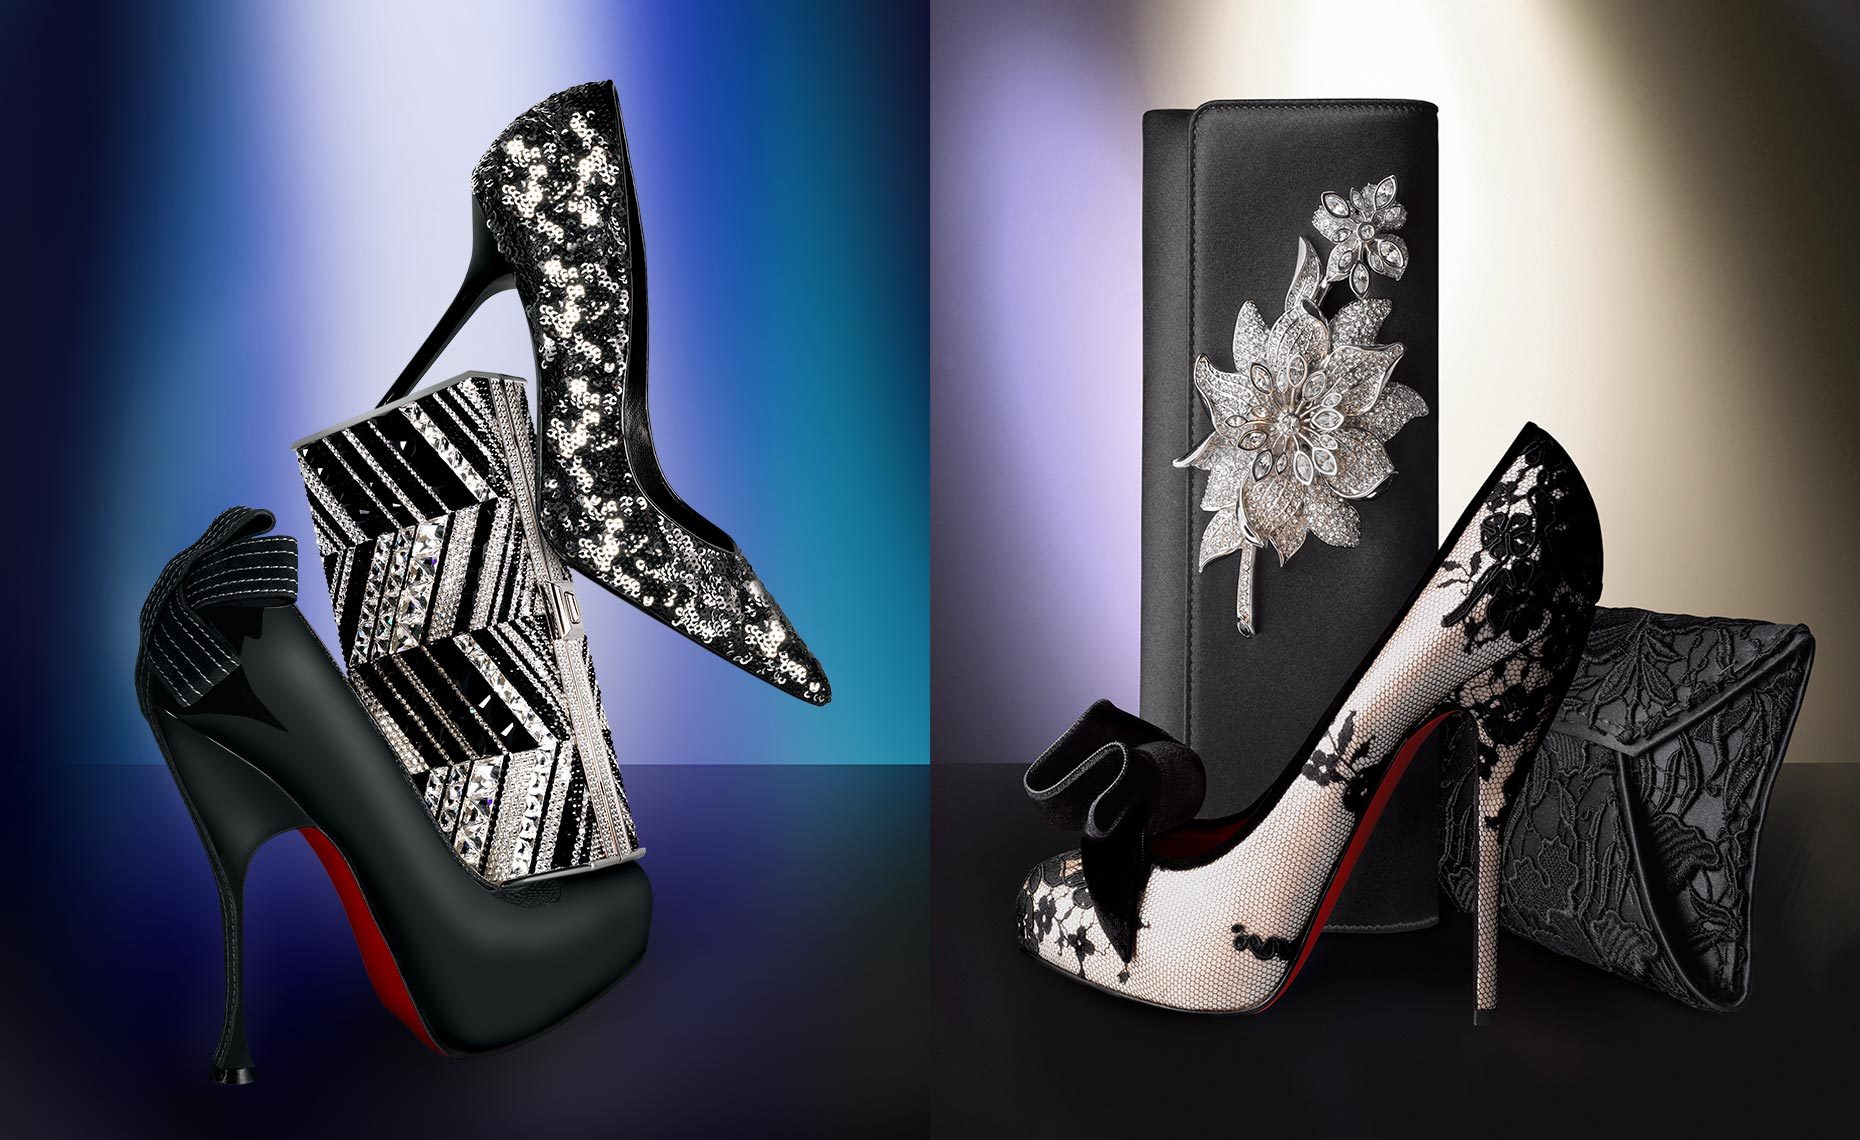 Christian Louboutin and Oscar de la Renta shoes with clutches